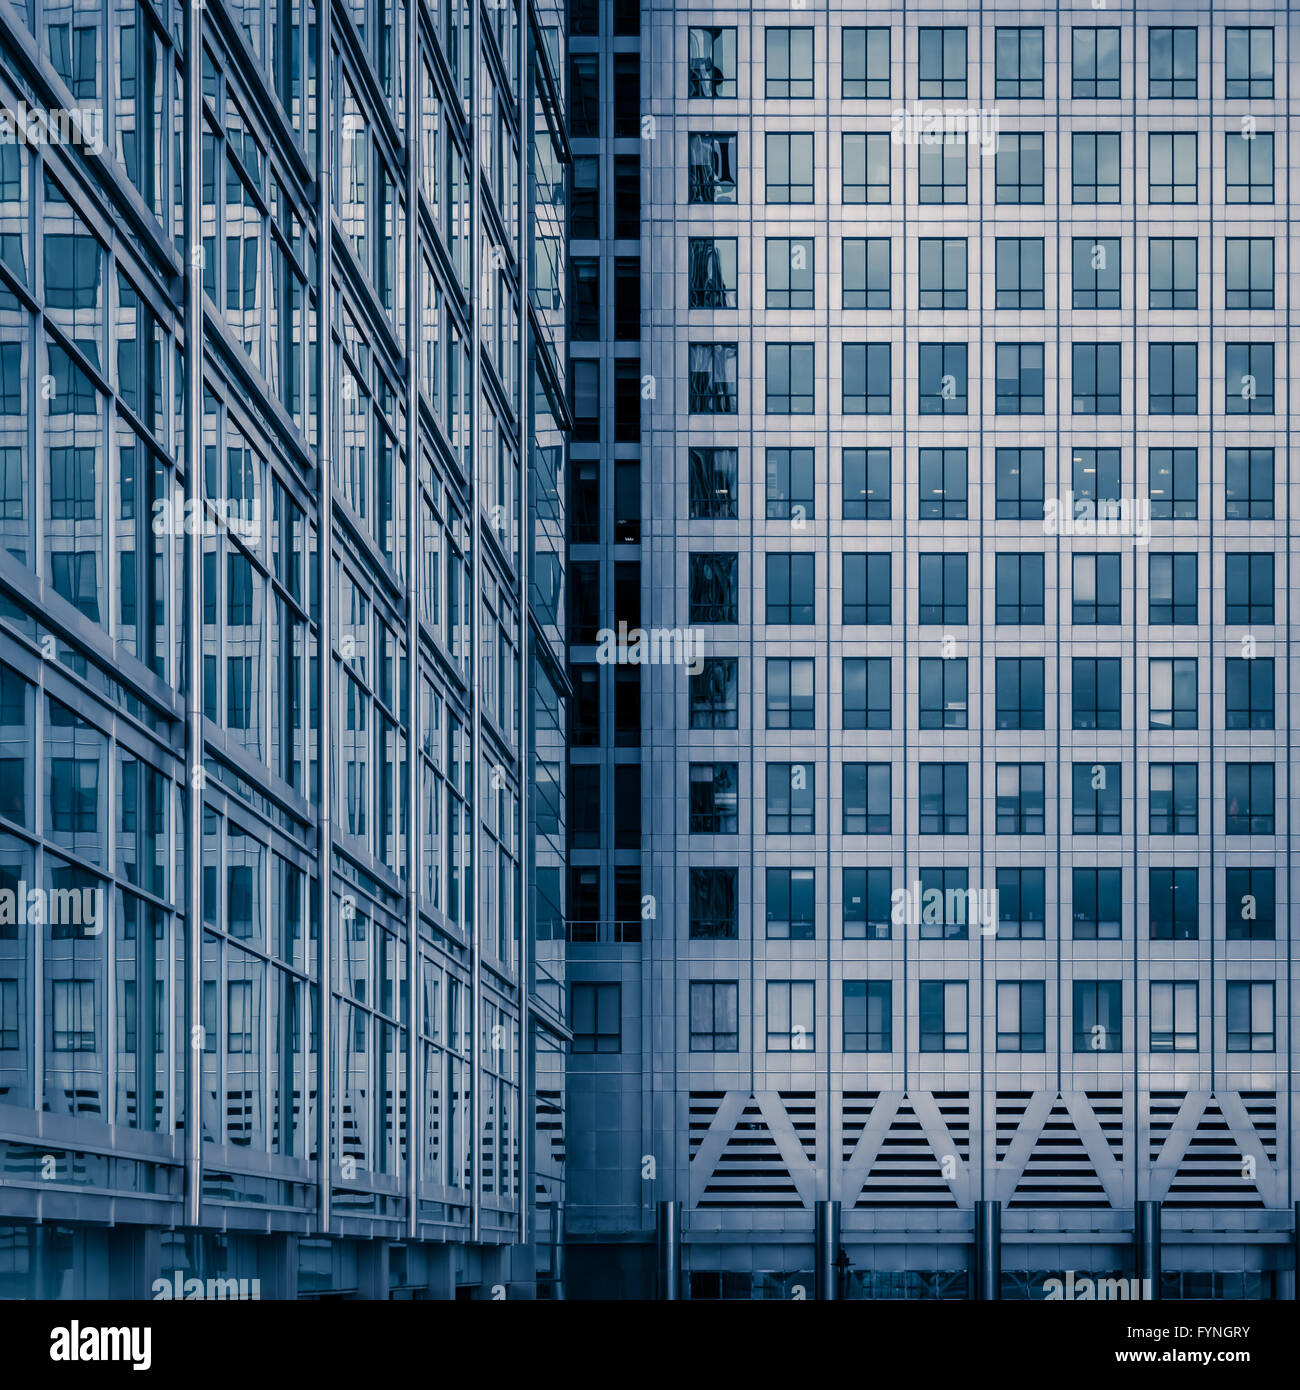 Office buildings in Canary Wharf, London, United Kingdom Stock Photo